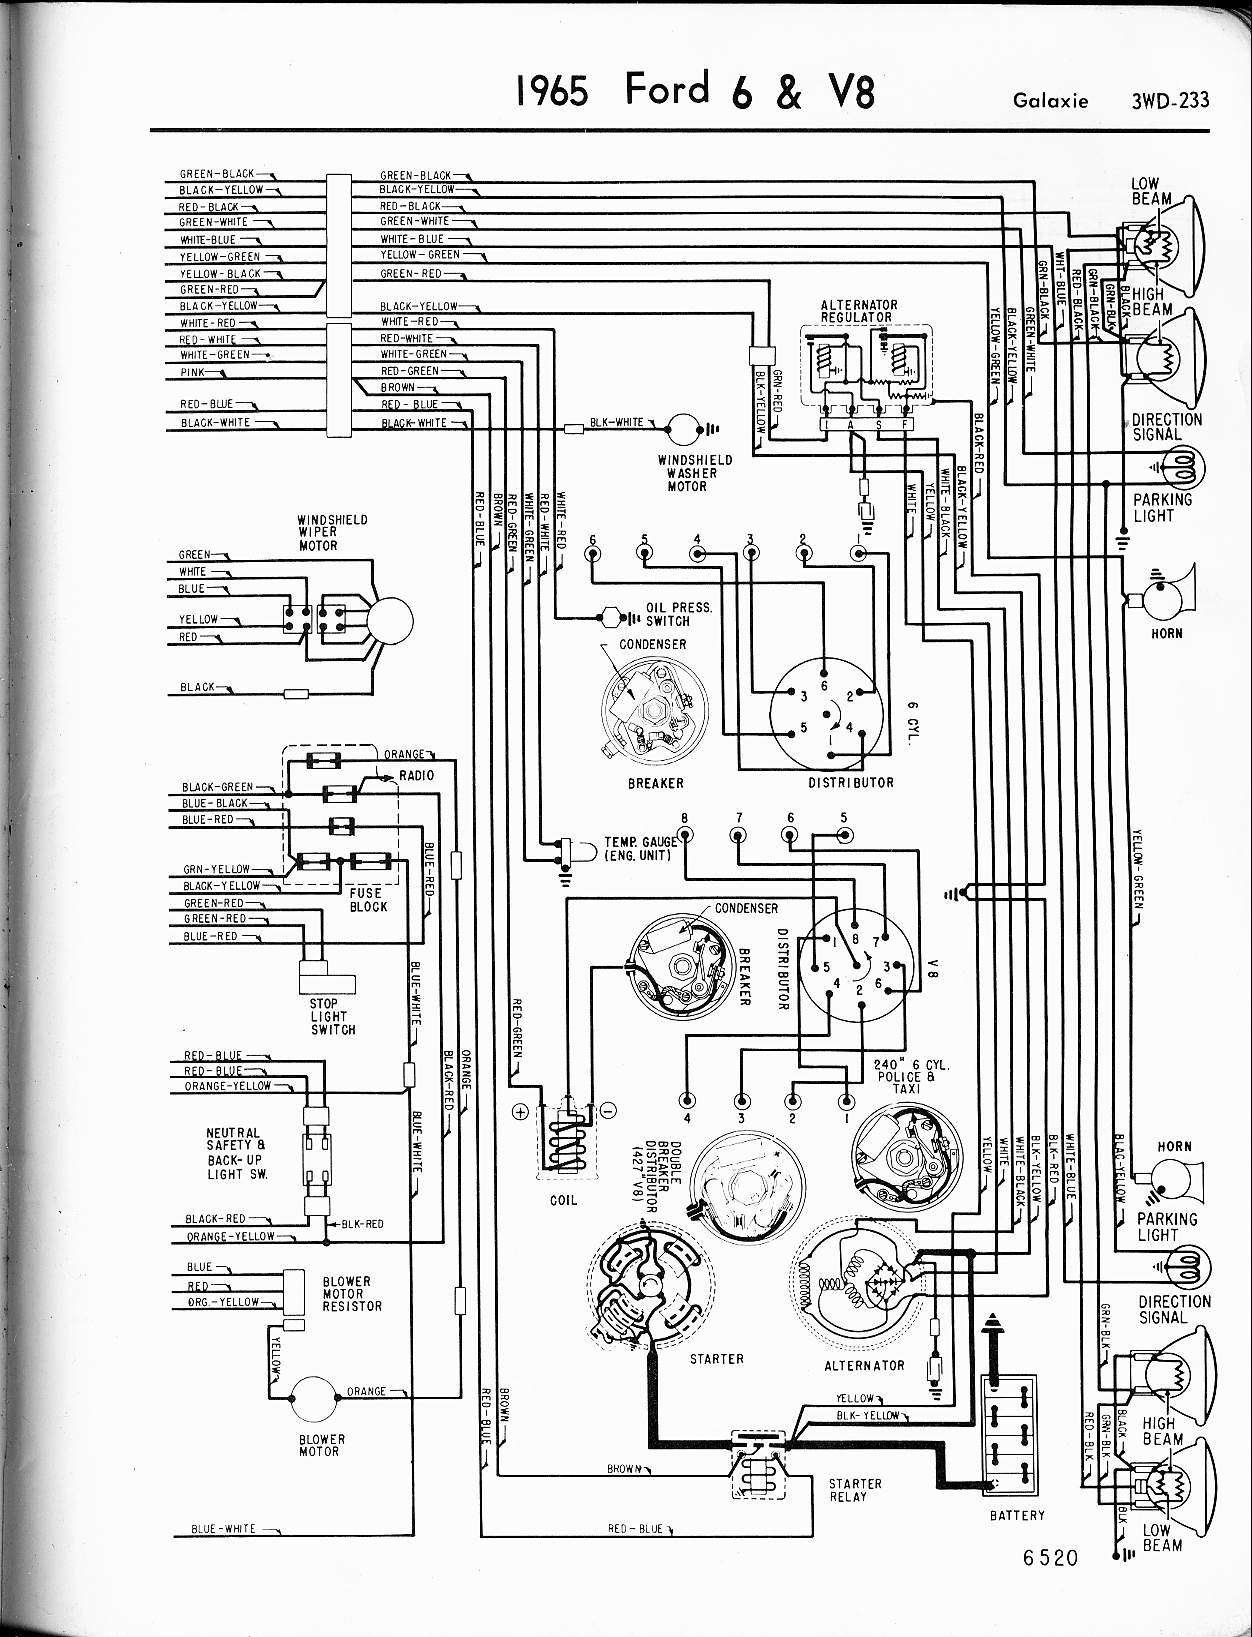 1966 Mustang 289 Wiring Diagram | Wiring Diagram on 65 mustang voltage regulator wiring, 65 mustang neutral safety switch wiring, 65 mustang alternator wiring, 65 mustang wiper switch wiring, 65 mustang fog light wiring, 65 mustang wiper motor wiring, 65 mustang starter wiring, 65 mustang headlight switch wiring, 65 mustang engine wiring,